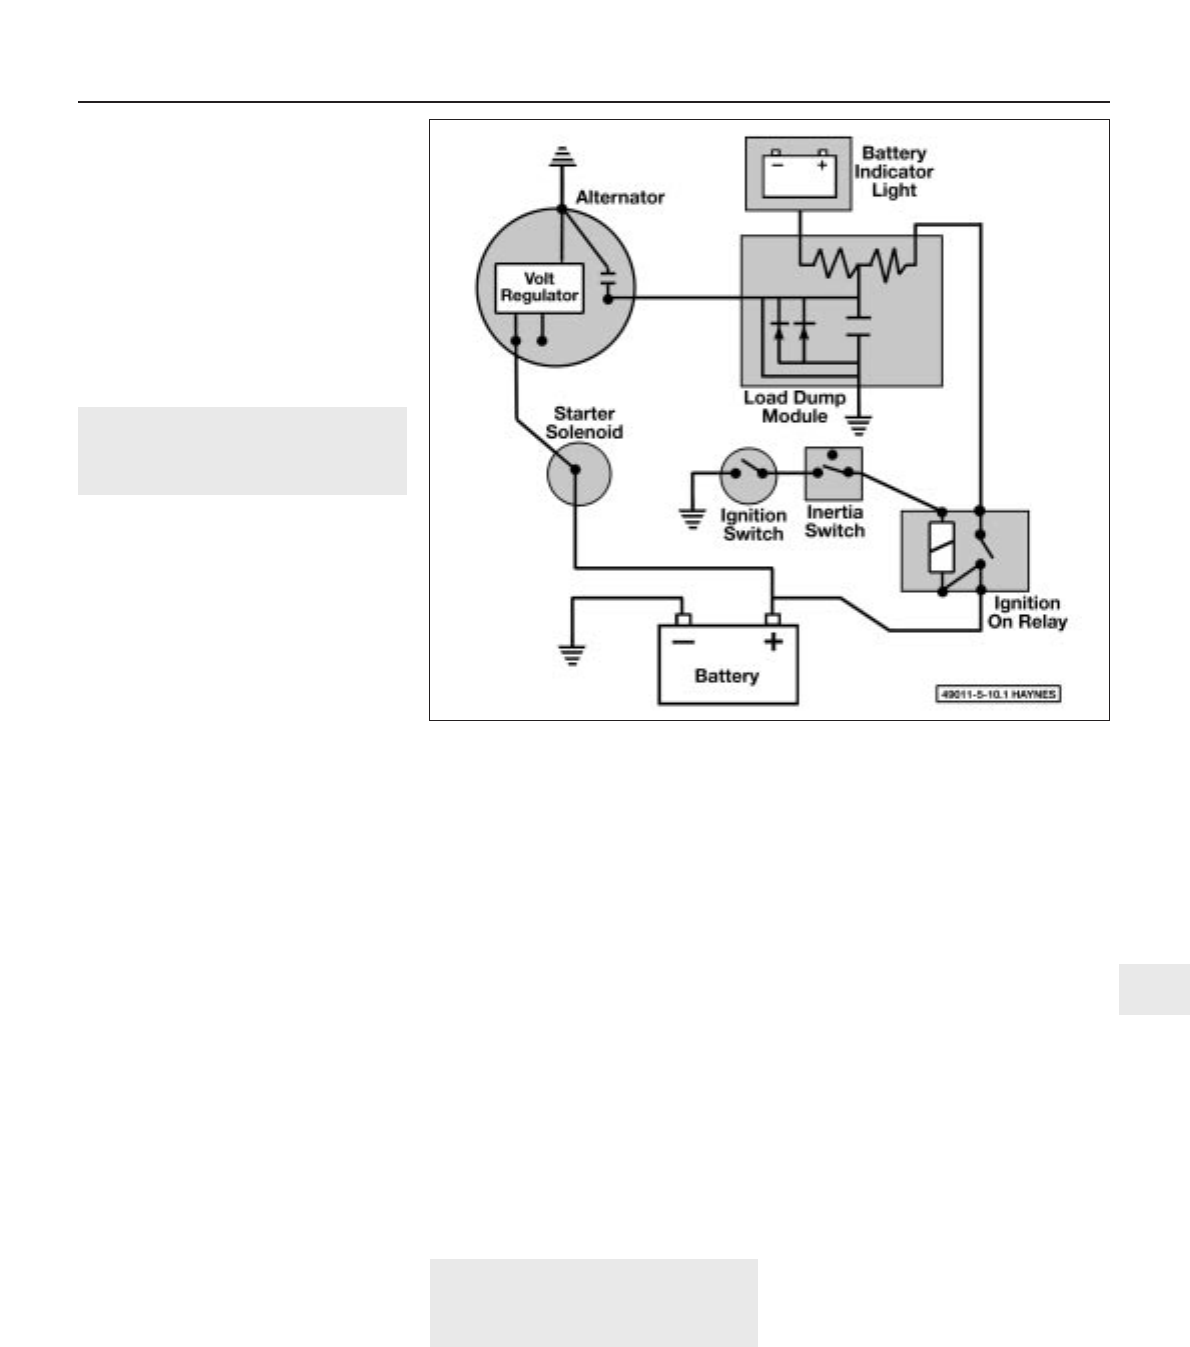 65EFABA 1996 Jaguar Xj6 Alternator Wiring Diagram | #Digital ... on jaguar mark x, jaguar exhaust system, 2005 mini cooper parts diagrams, jaguar shooting brake, dish network receiver installation diagrams, jaguar gt, jaguar xk8 problems, jaguar mark 2, jaguar 2 door, jaguar wagon, jaguar rear end, jaguar fuel pump diagram, jaguar growler, jaguar e class, jaguar r type, jaguar parts diagrams, jaguar hardtop convertible, jaguar racing green, jaguar electrical diagrams,